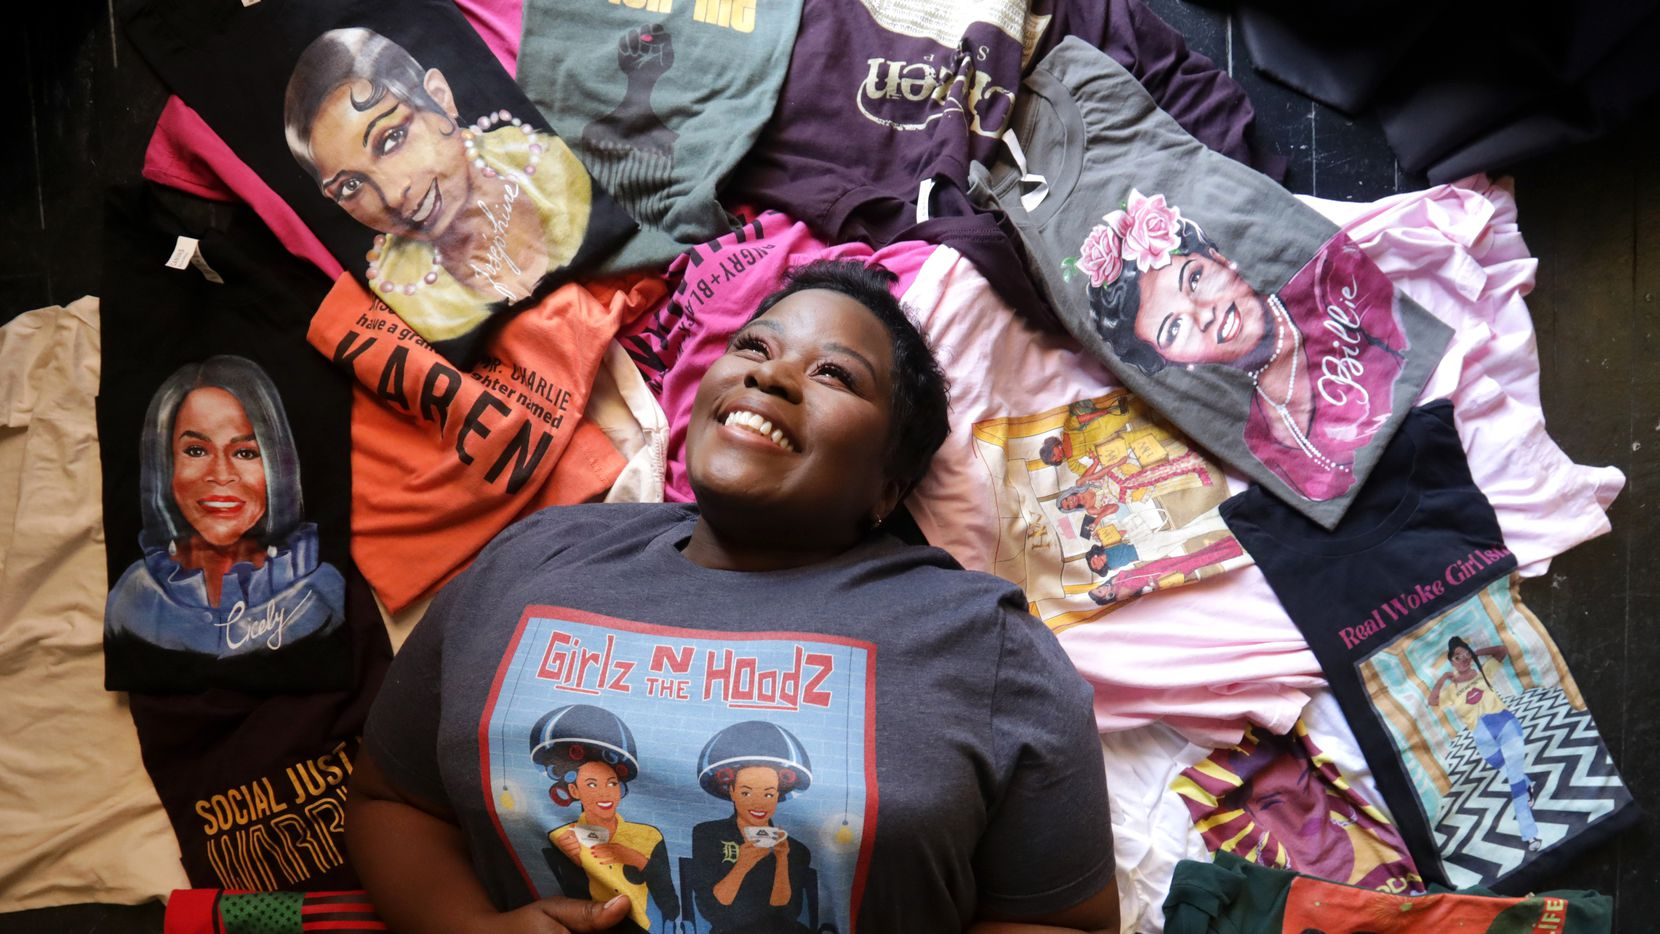 Dallas improv comedian Sydney Plant channeled her passion for honoring Black women's experiences into a new line of T-shirts. Her business is called Black Women Unlimited.